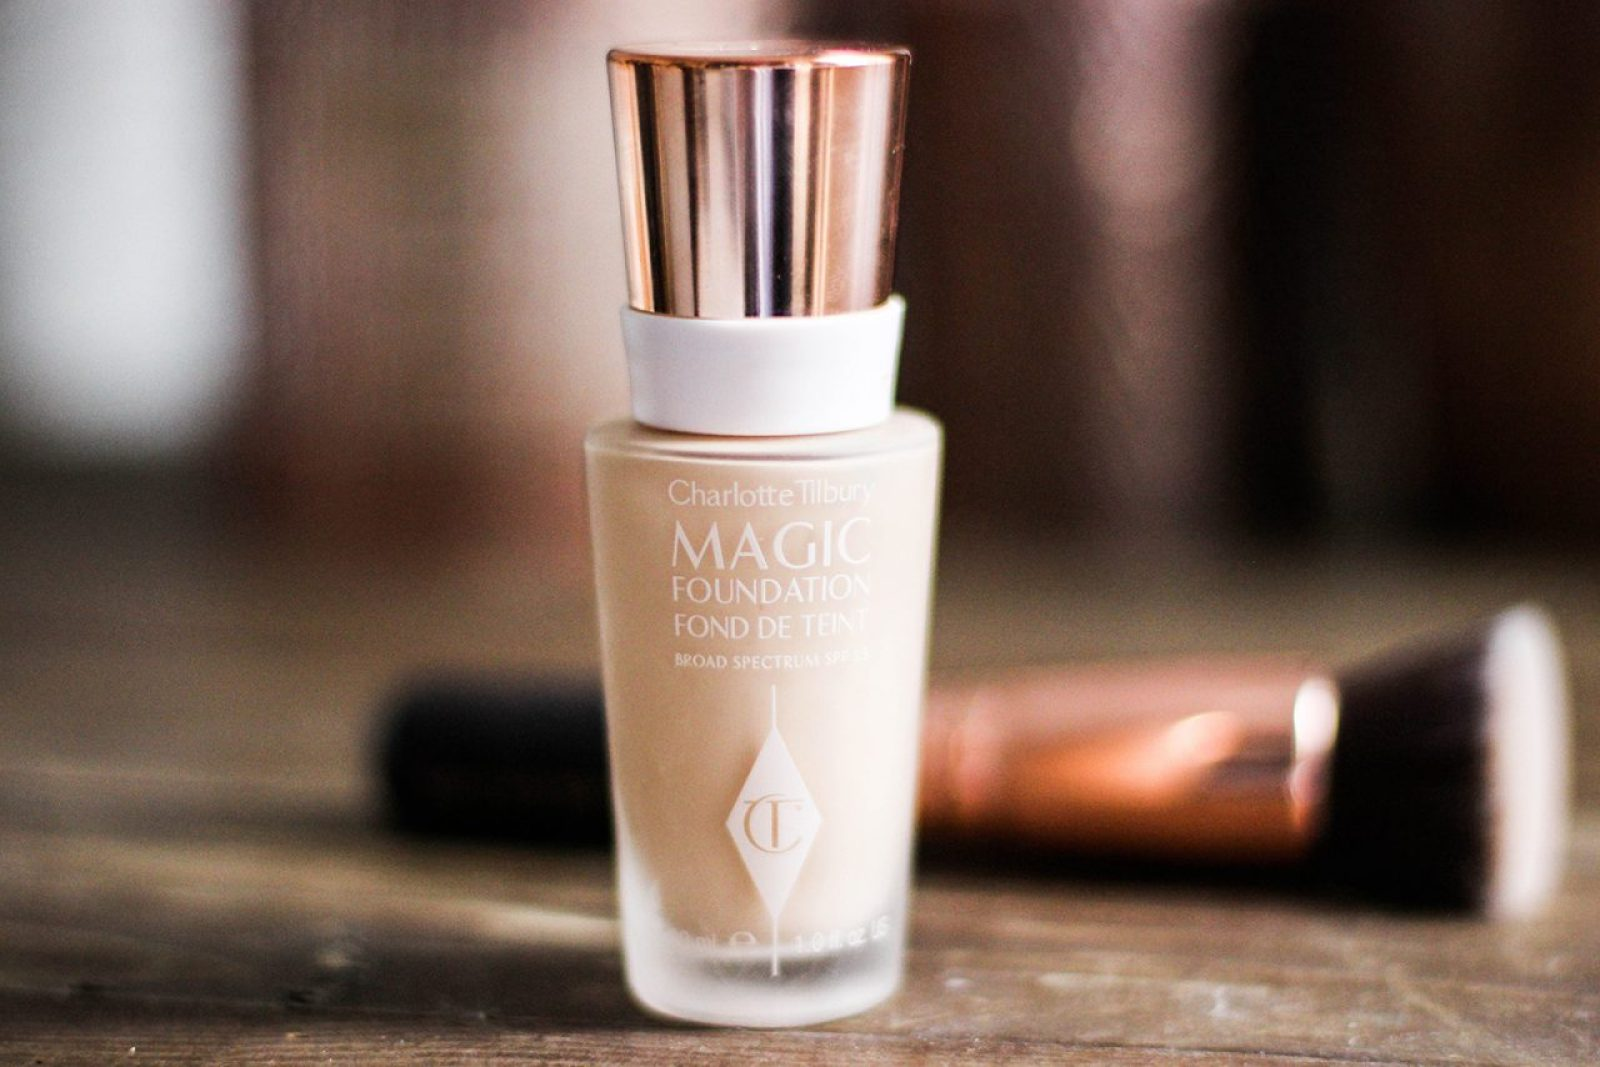 Charlotte Tilbury Magic Foundation Fond de Teint-20